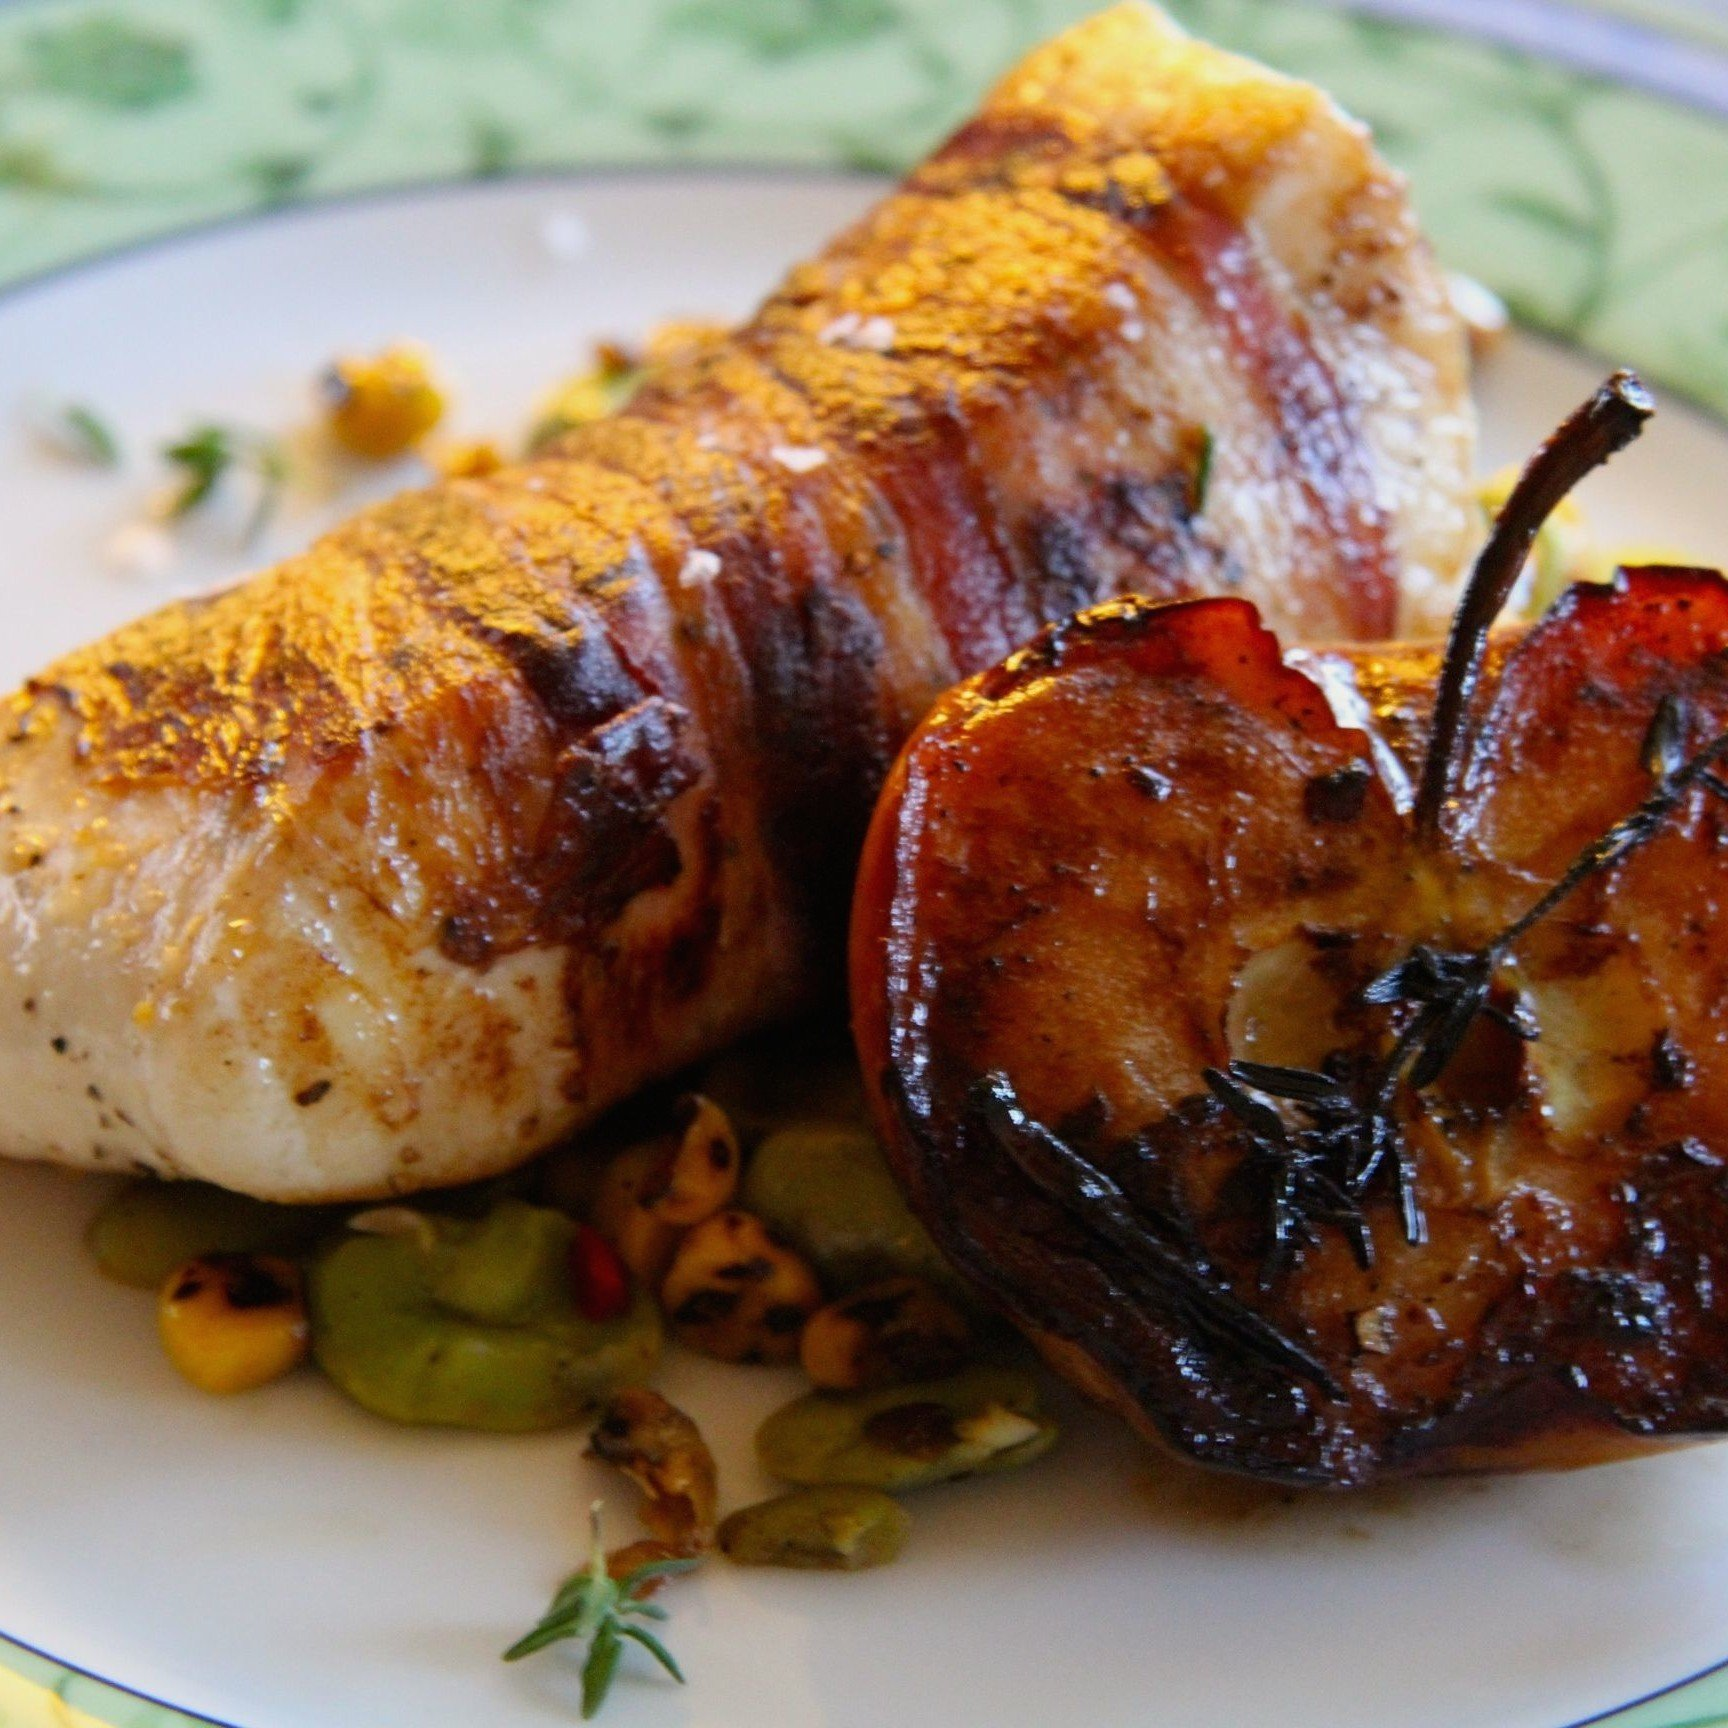 Pancetta-Wrapped Halibut with Succotash & Roasted Apples